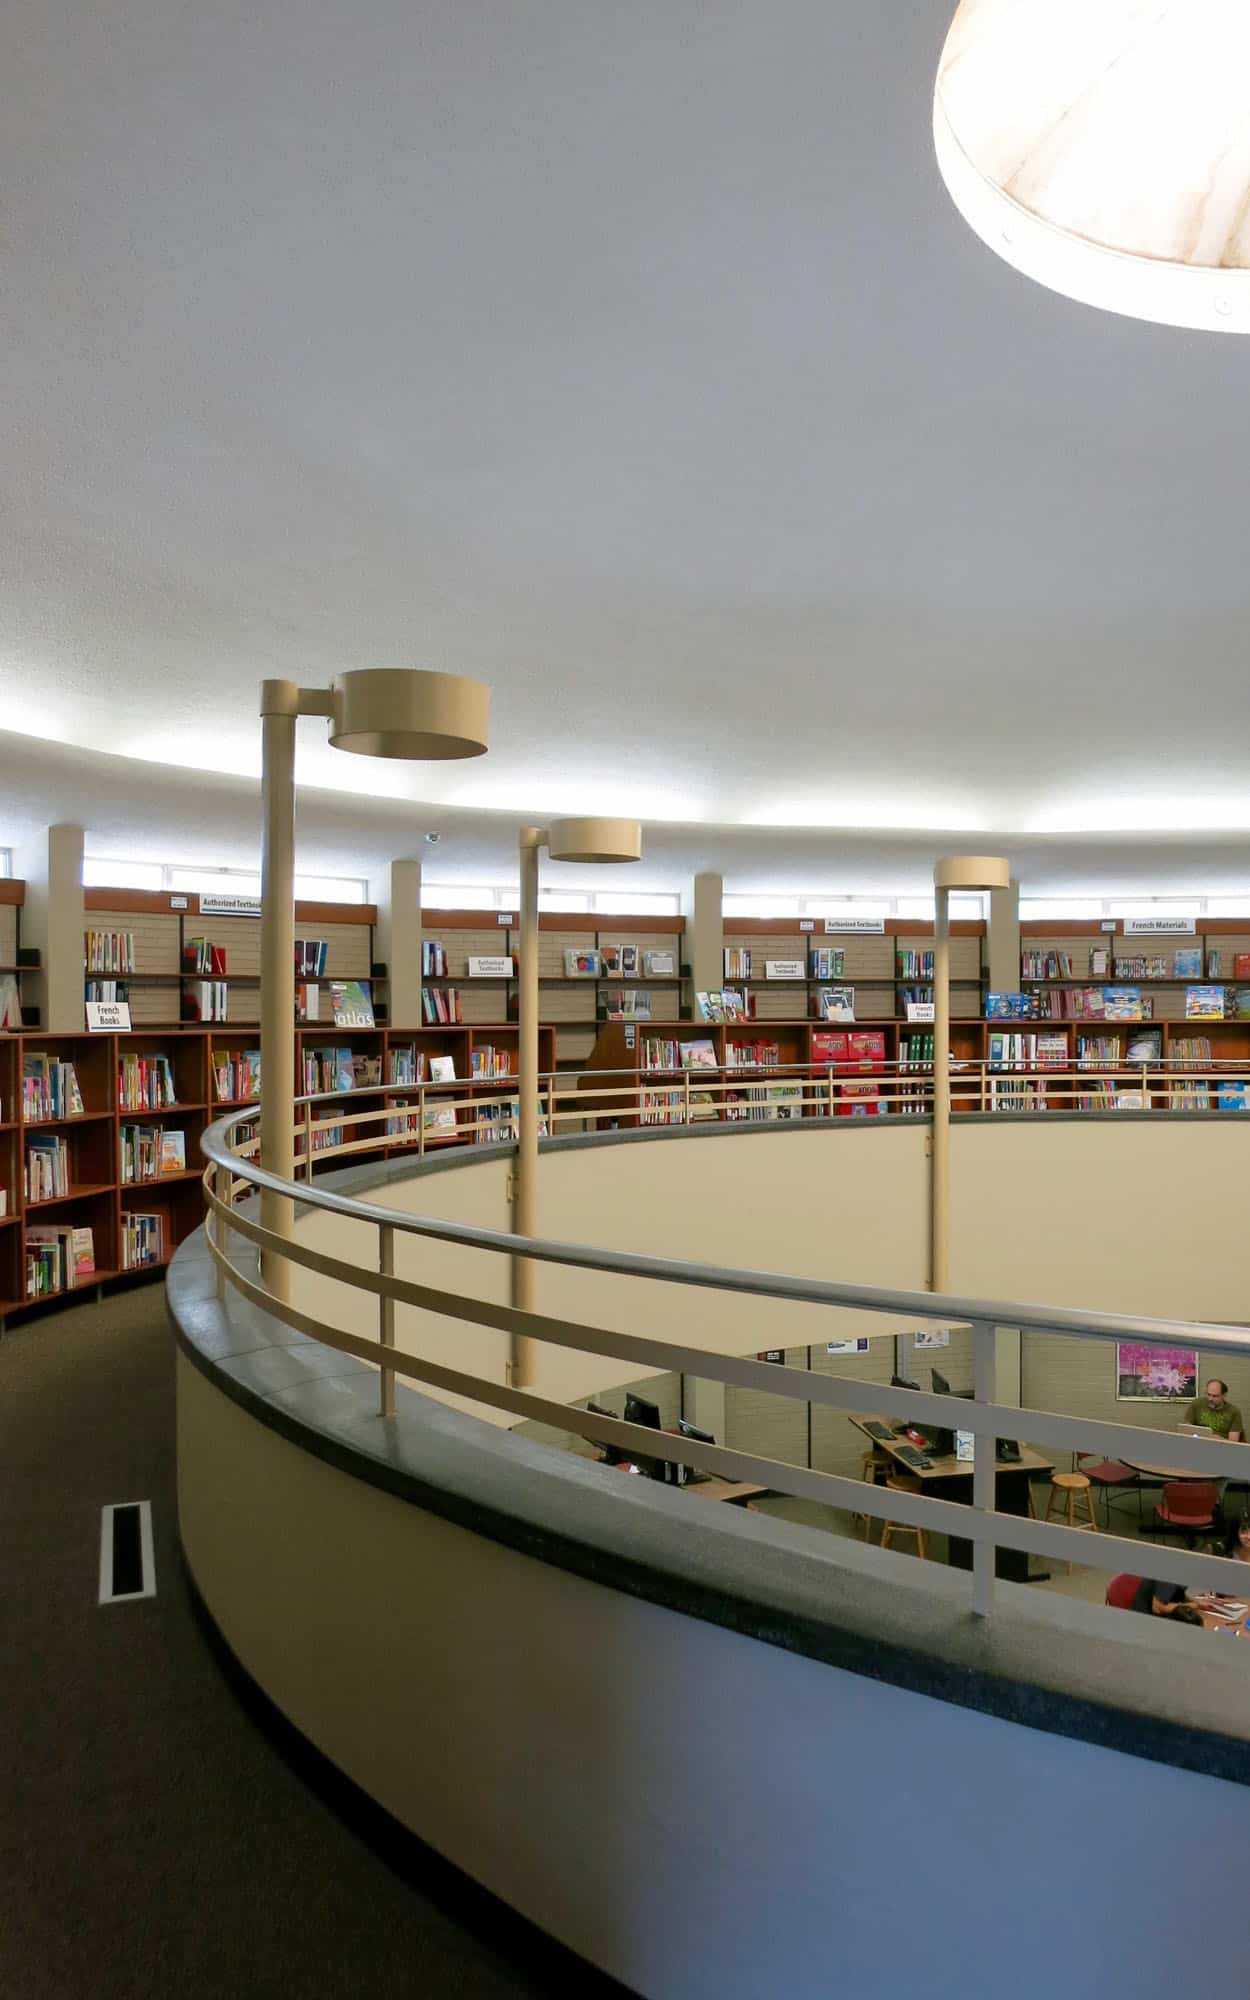 The double-height rotunda library characterized by diffuse light